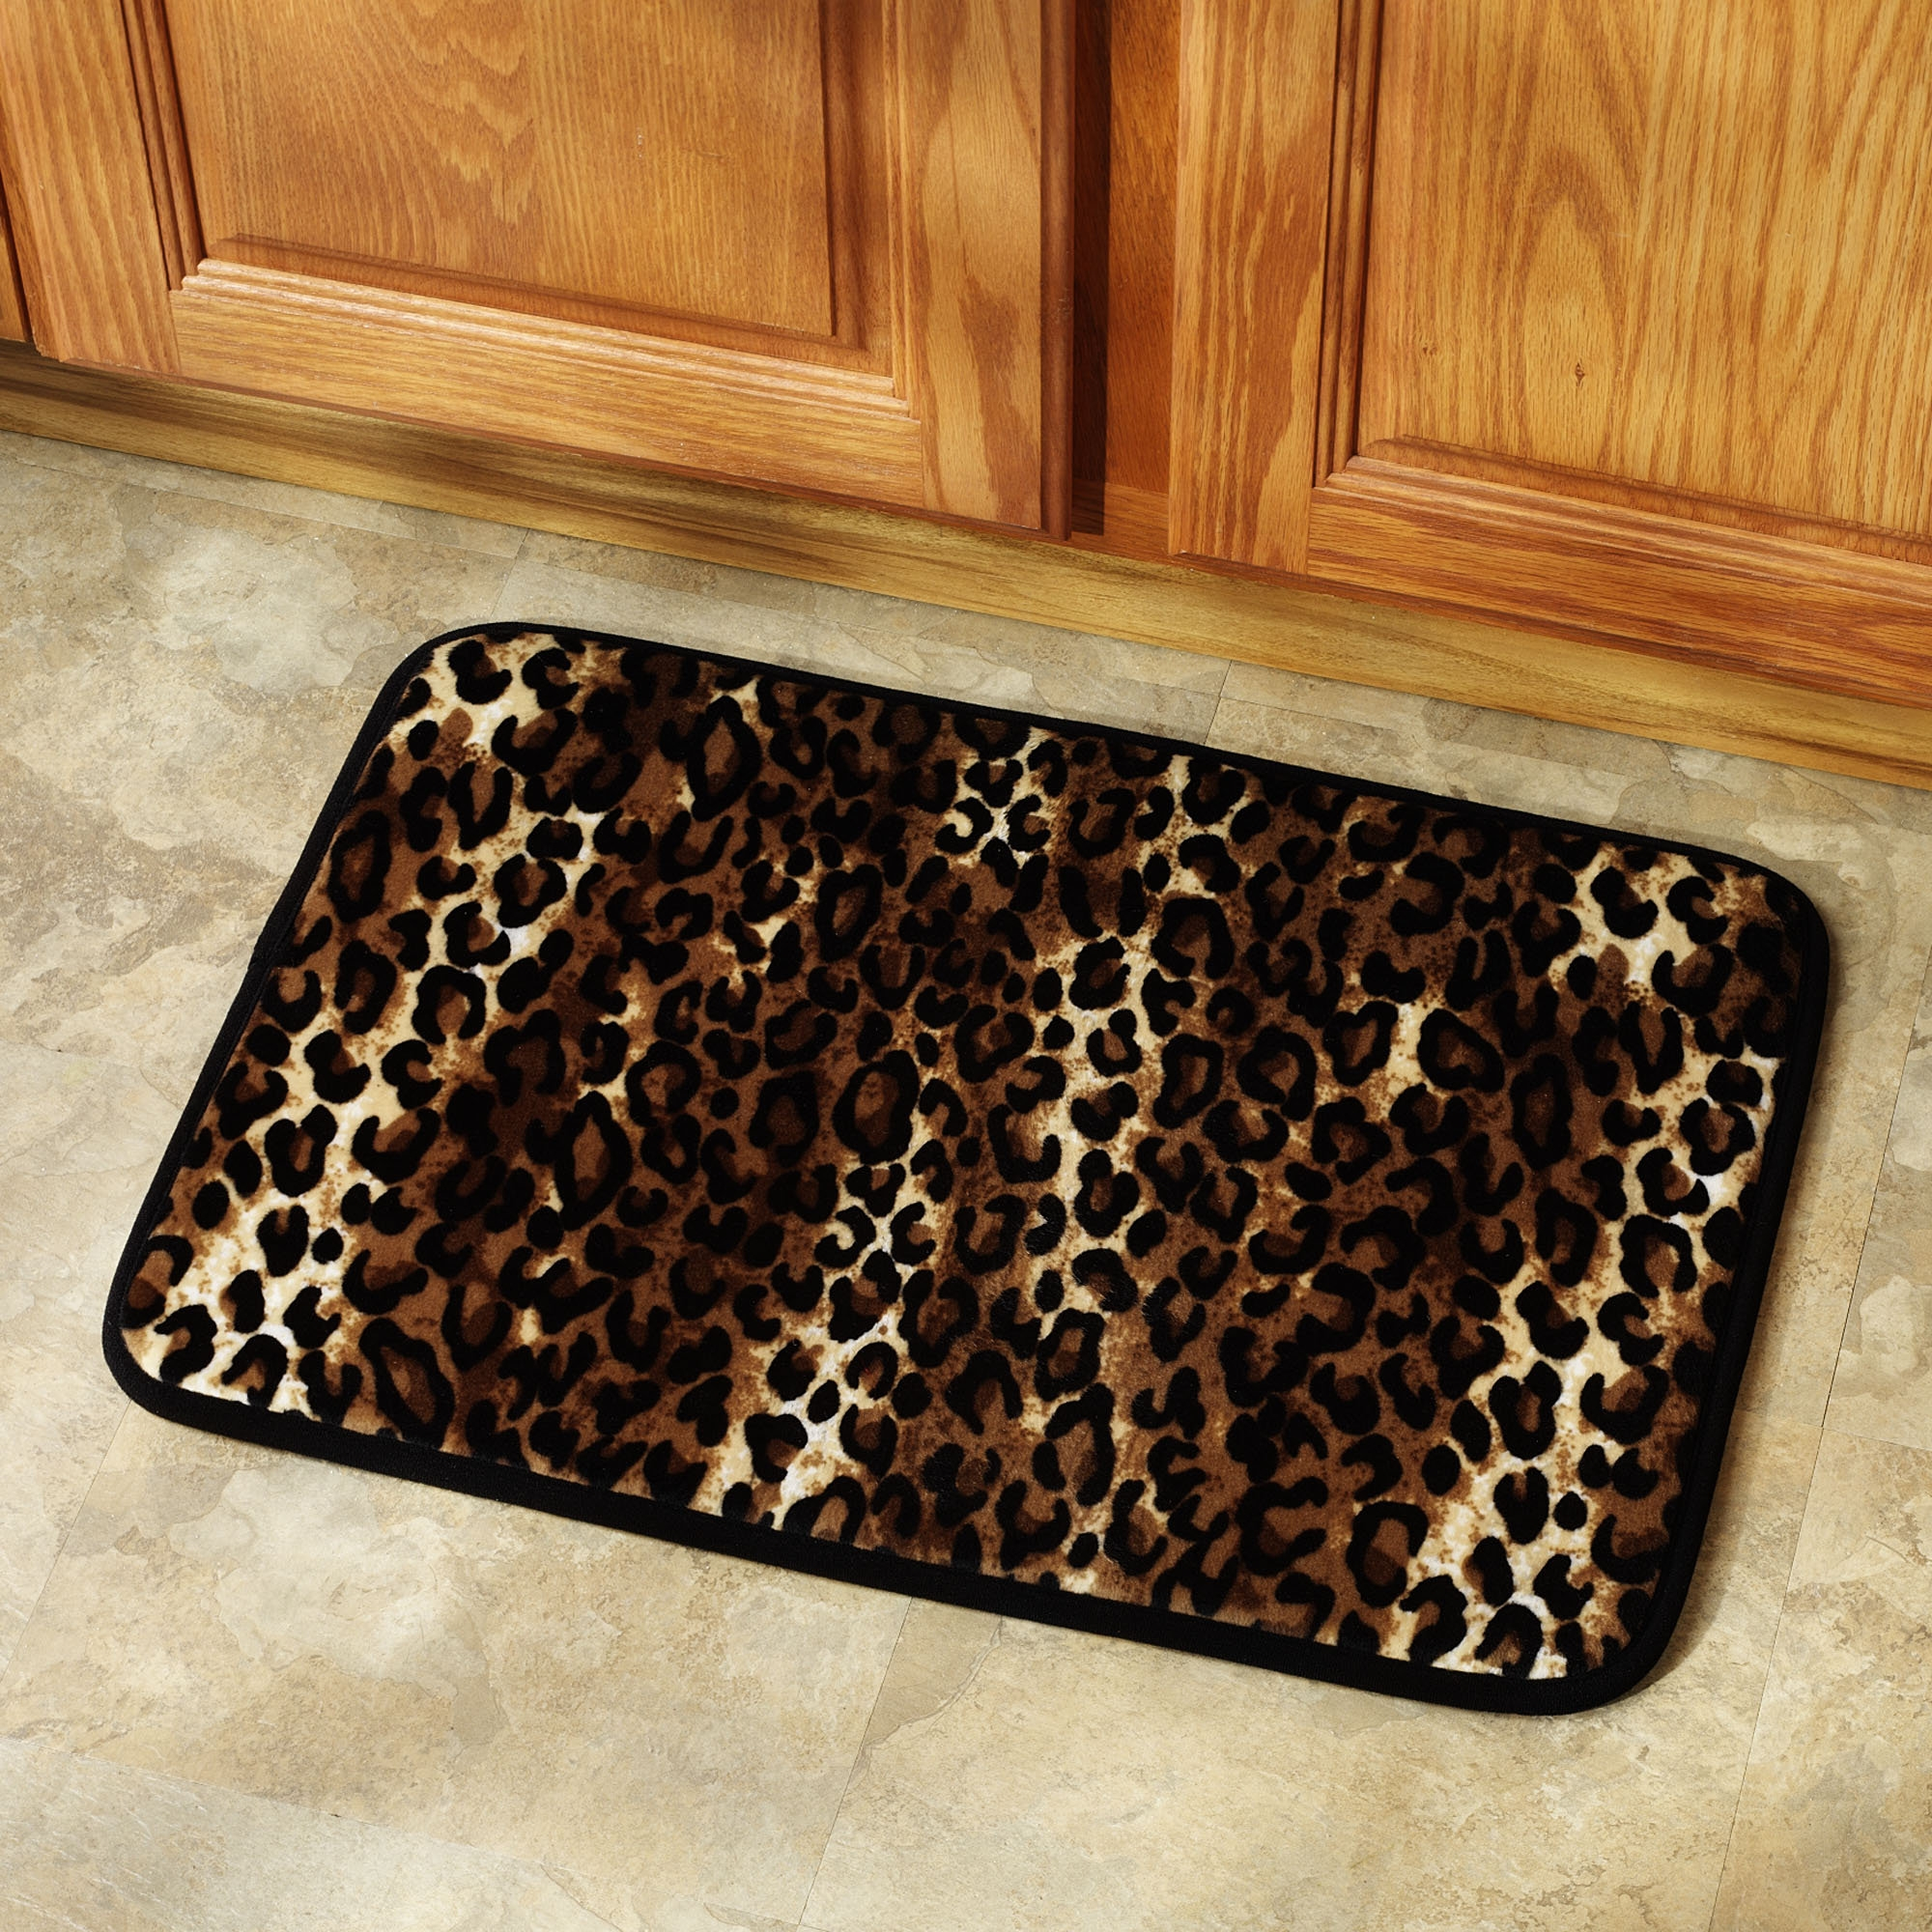 Leopard Print Bathroom Rugsleopard bathroom rugs